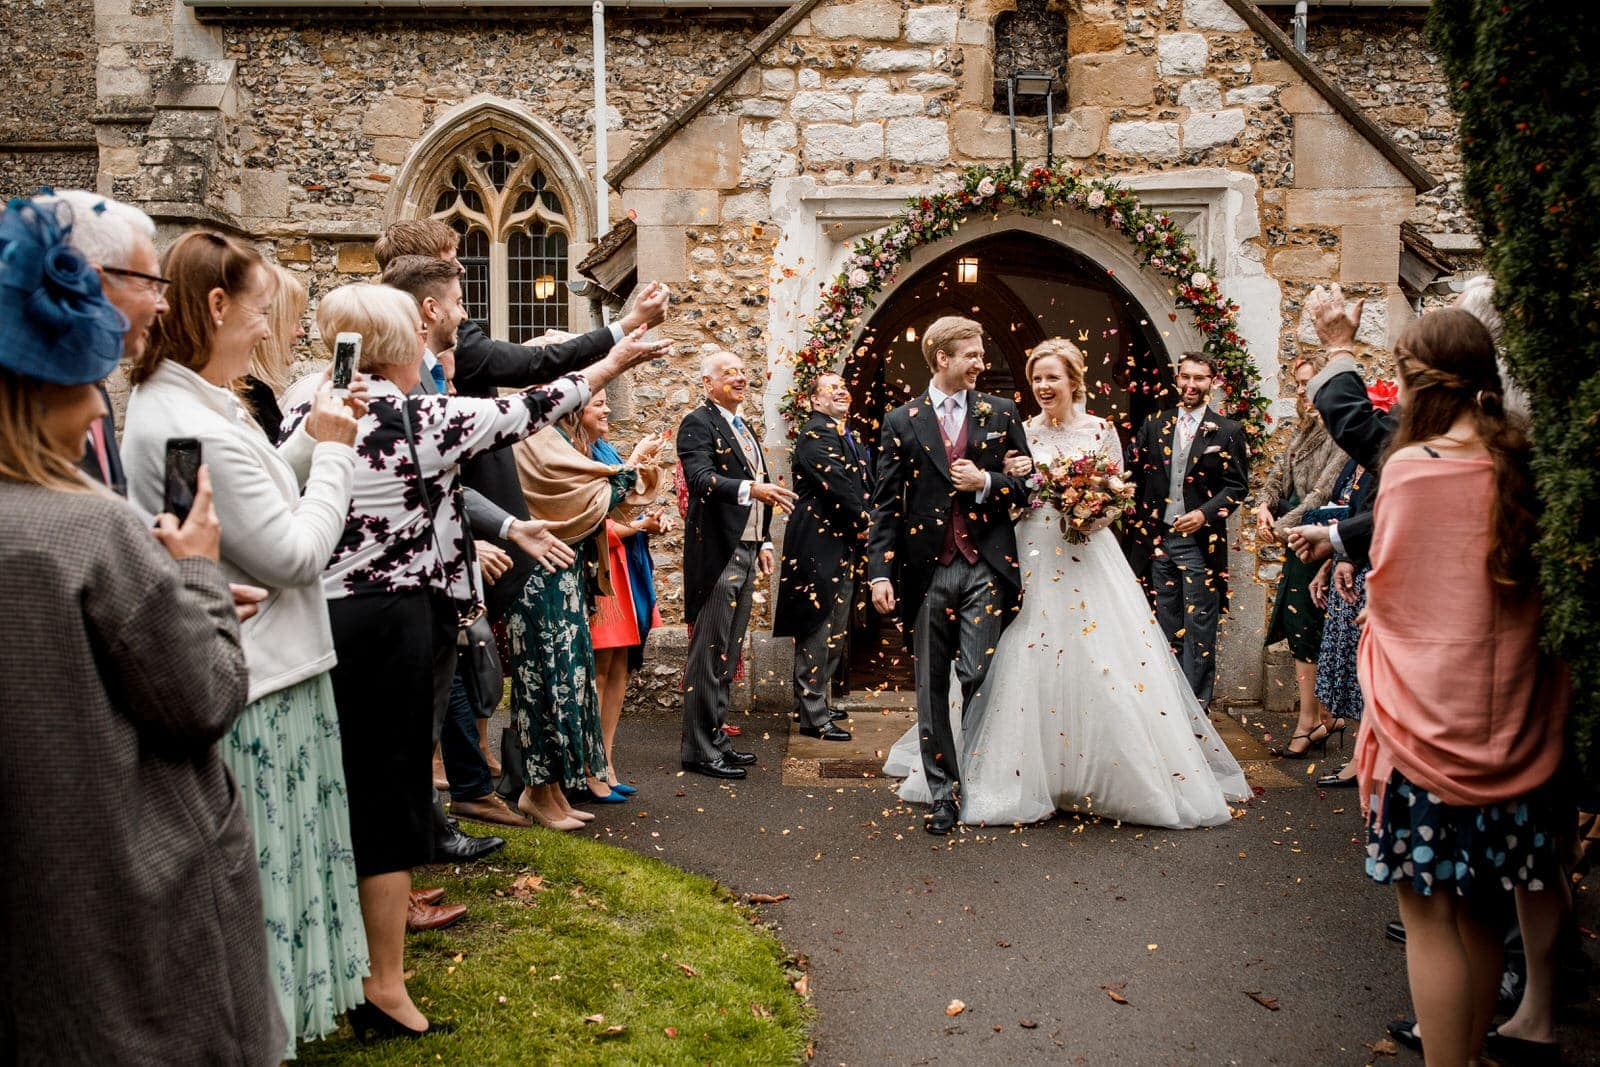 confetti throw at wedding